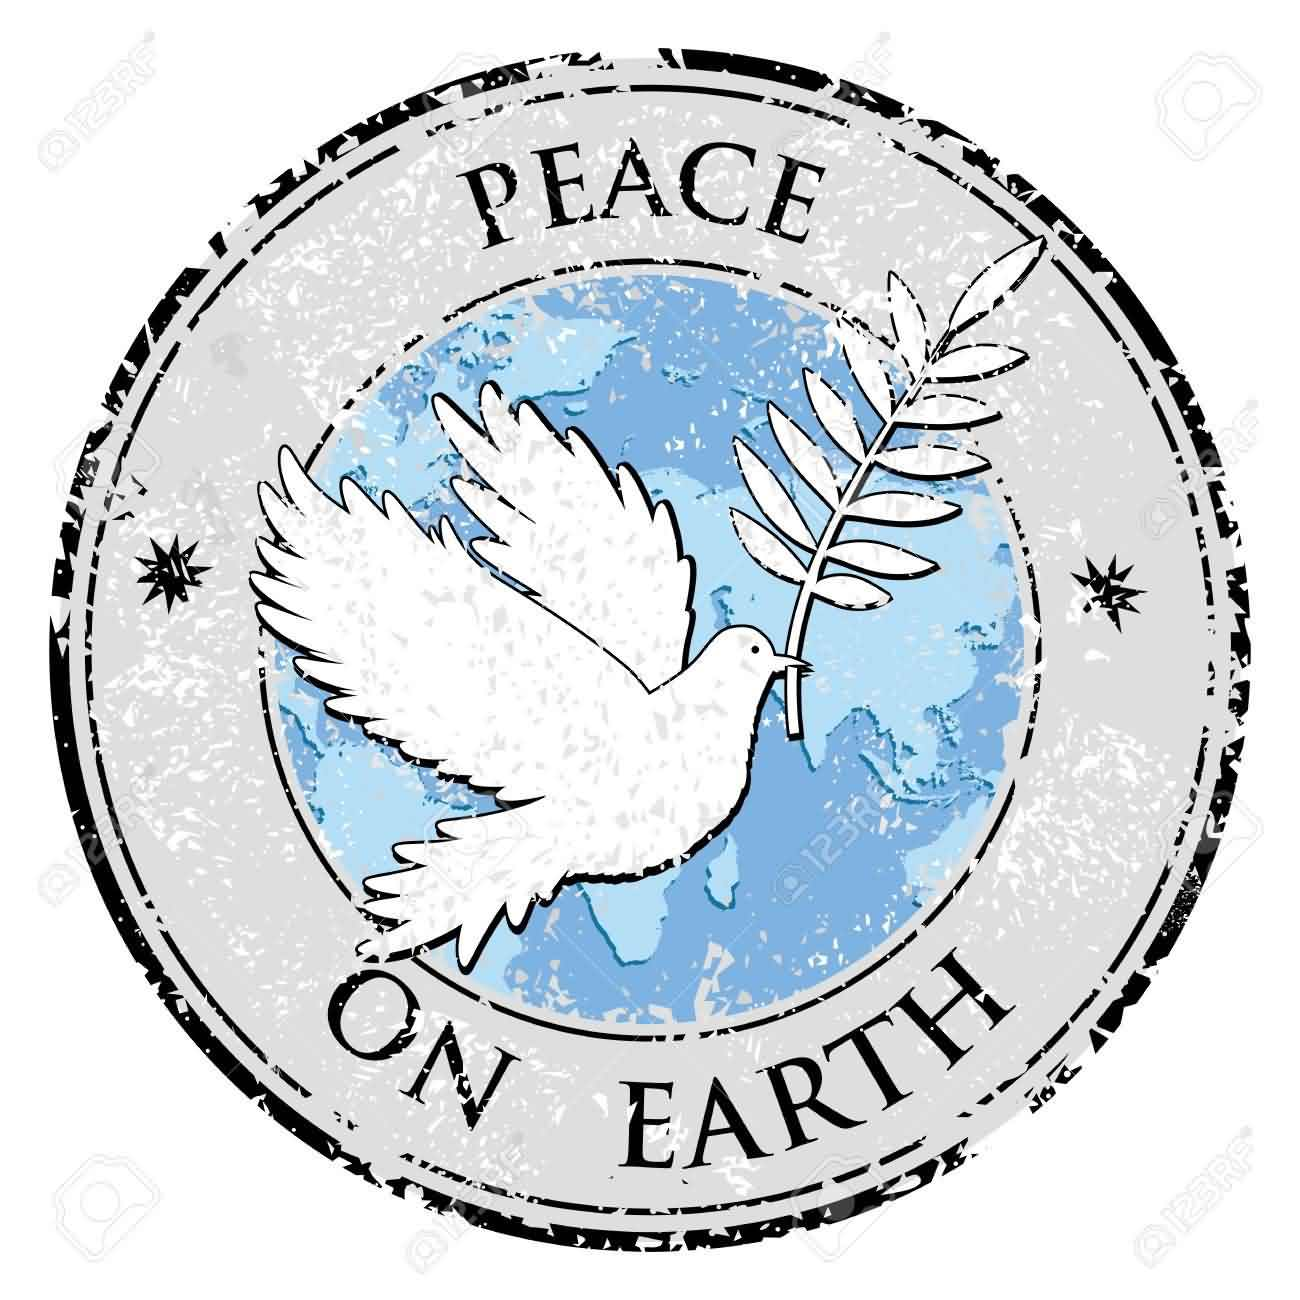 151-International Peace Day Wishes